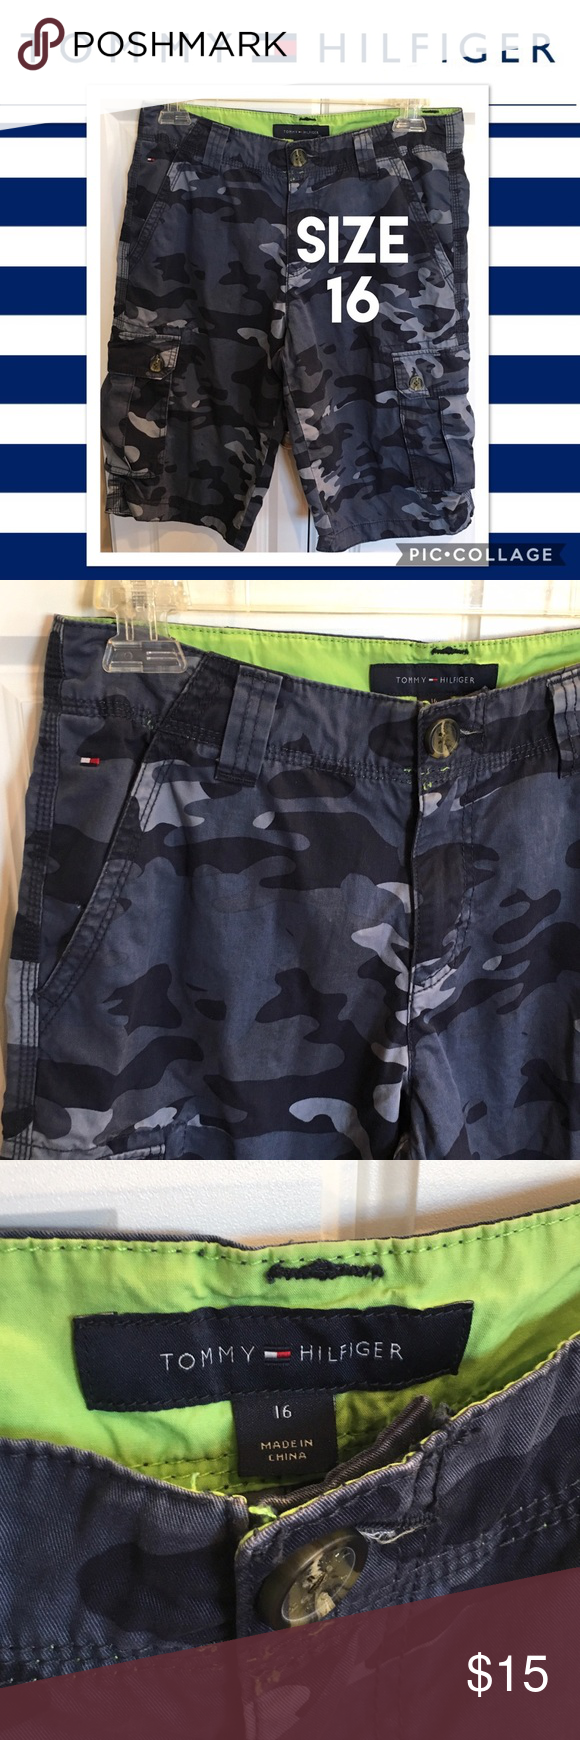 Tommy Hilfiger Boys Blue Camo Cargo Shorts Size 16 Excellent Condition. Tommy Hilfiger Bottoms Shorts